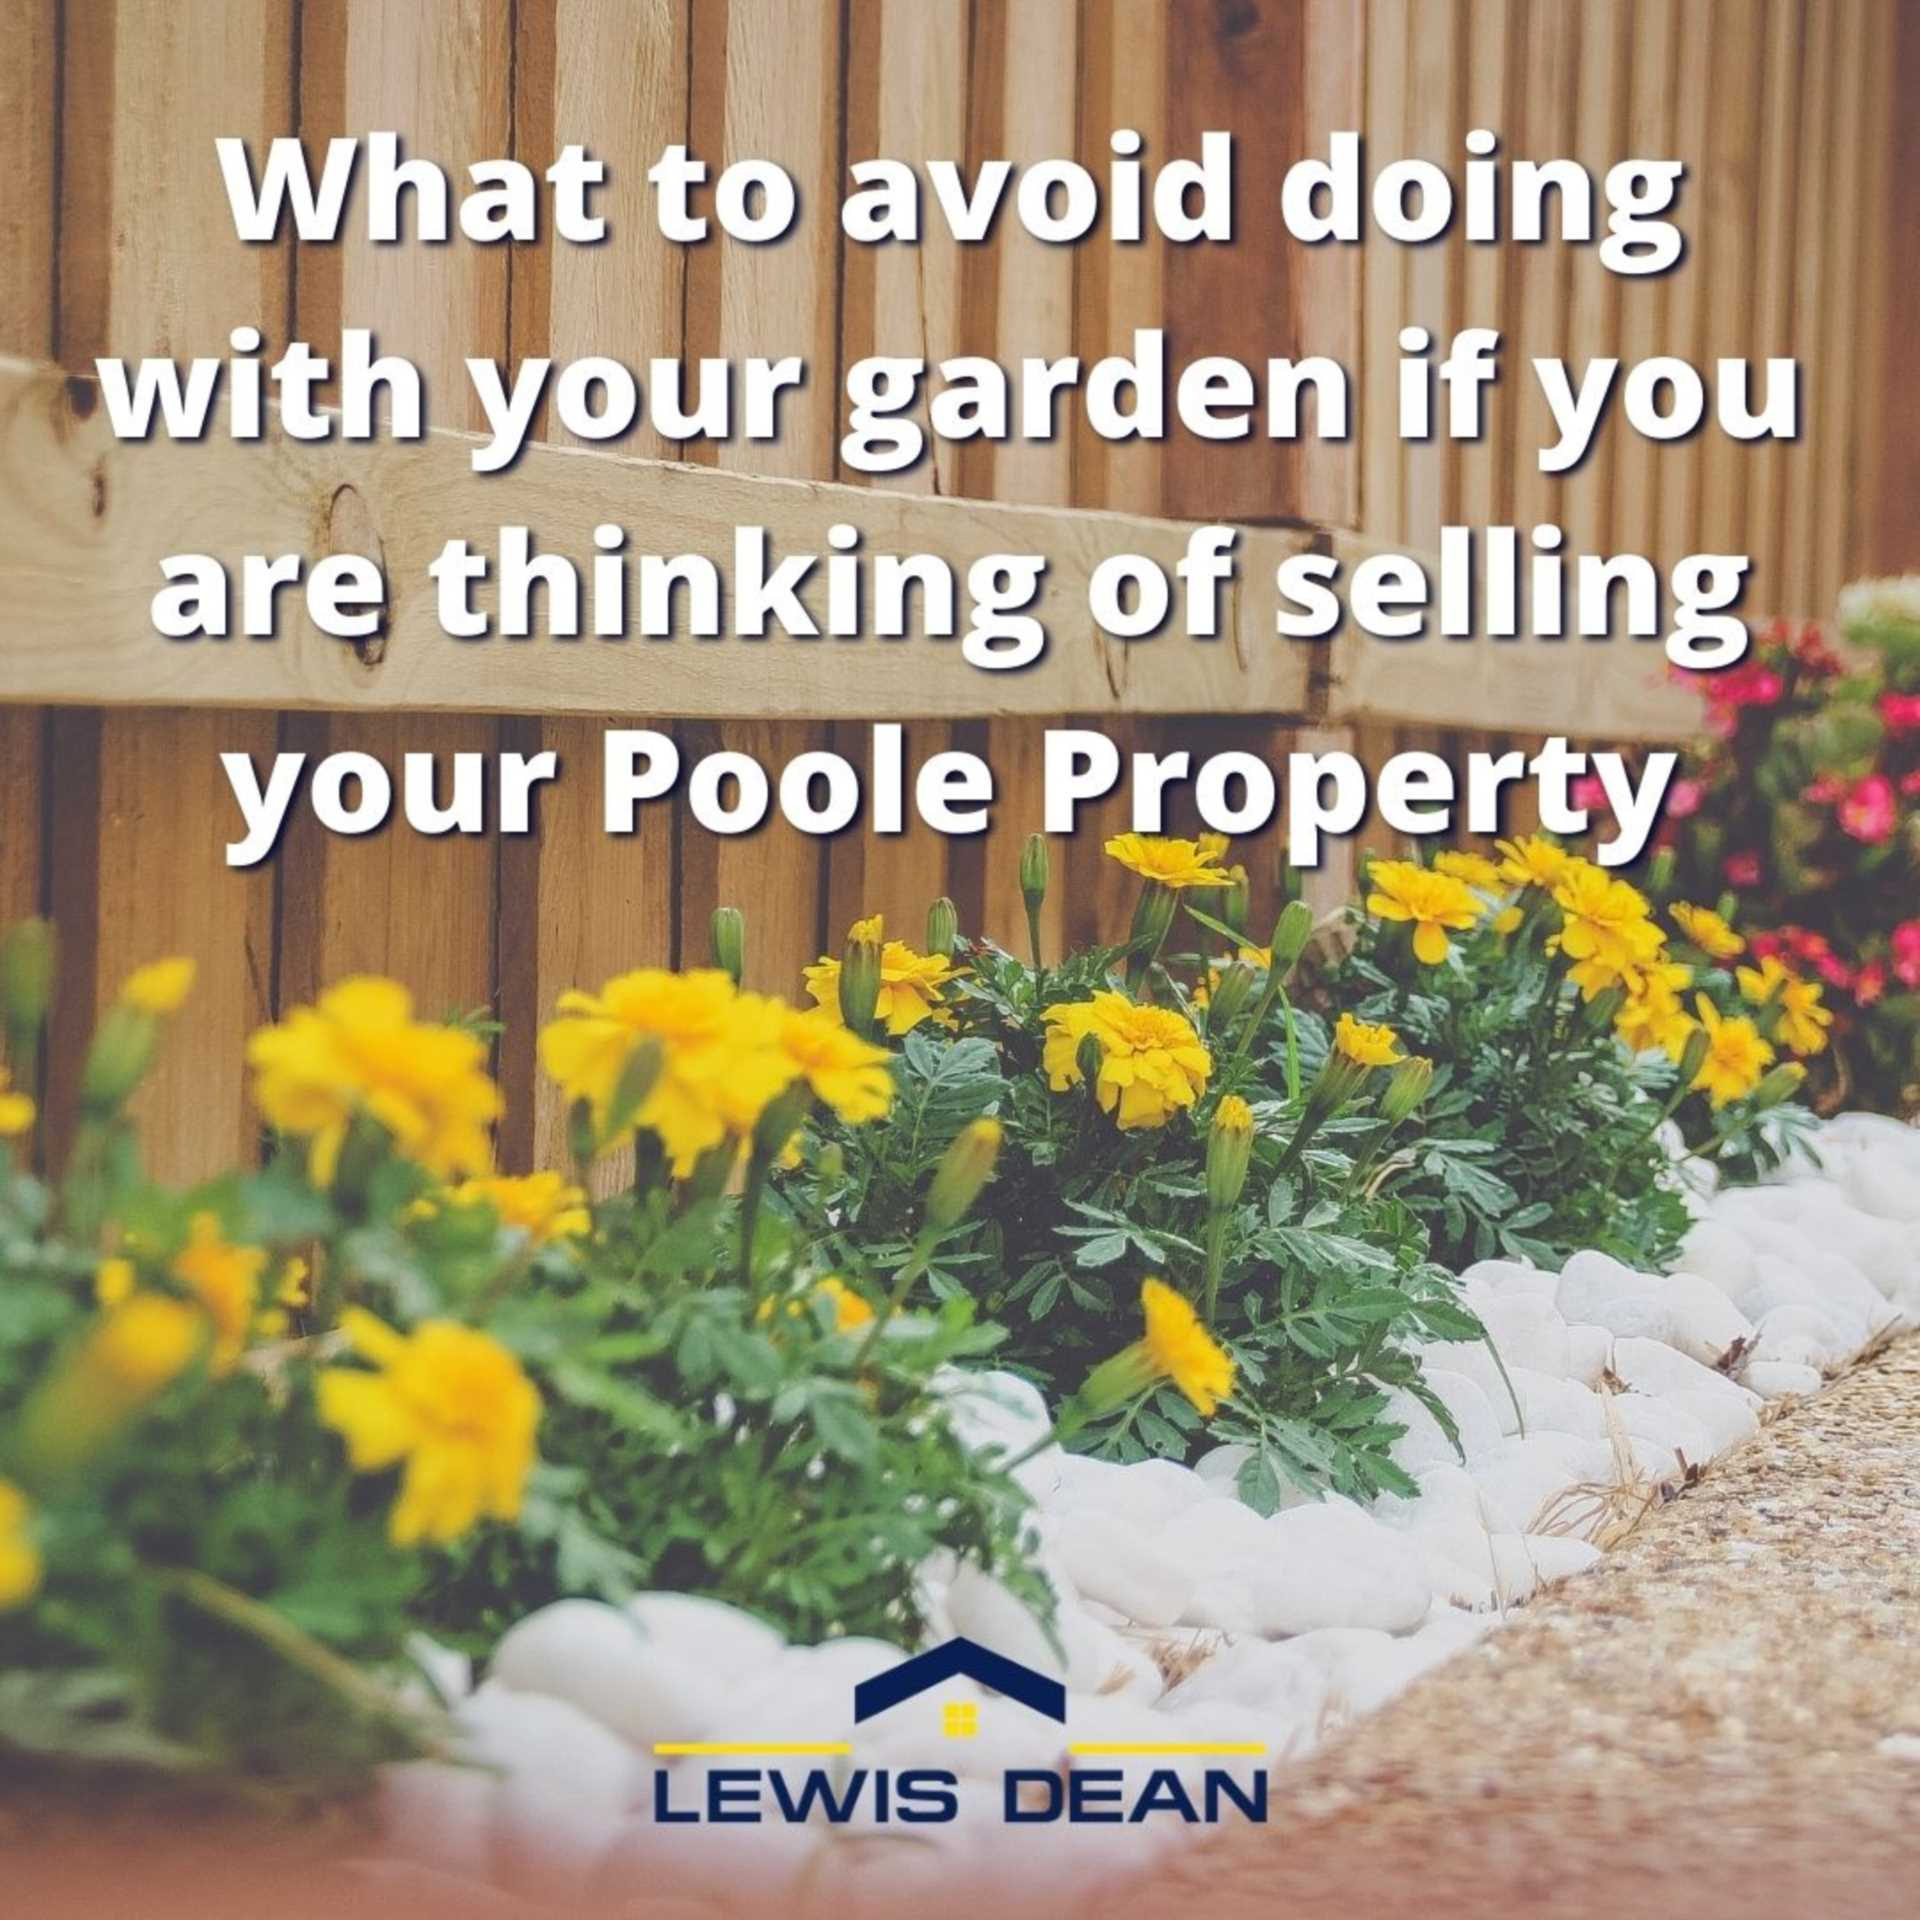 The Not-So-Great Outdoors - What to AVOID doing with your garden if you are thinking of selling your Poole Property.